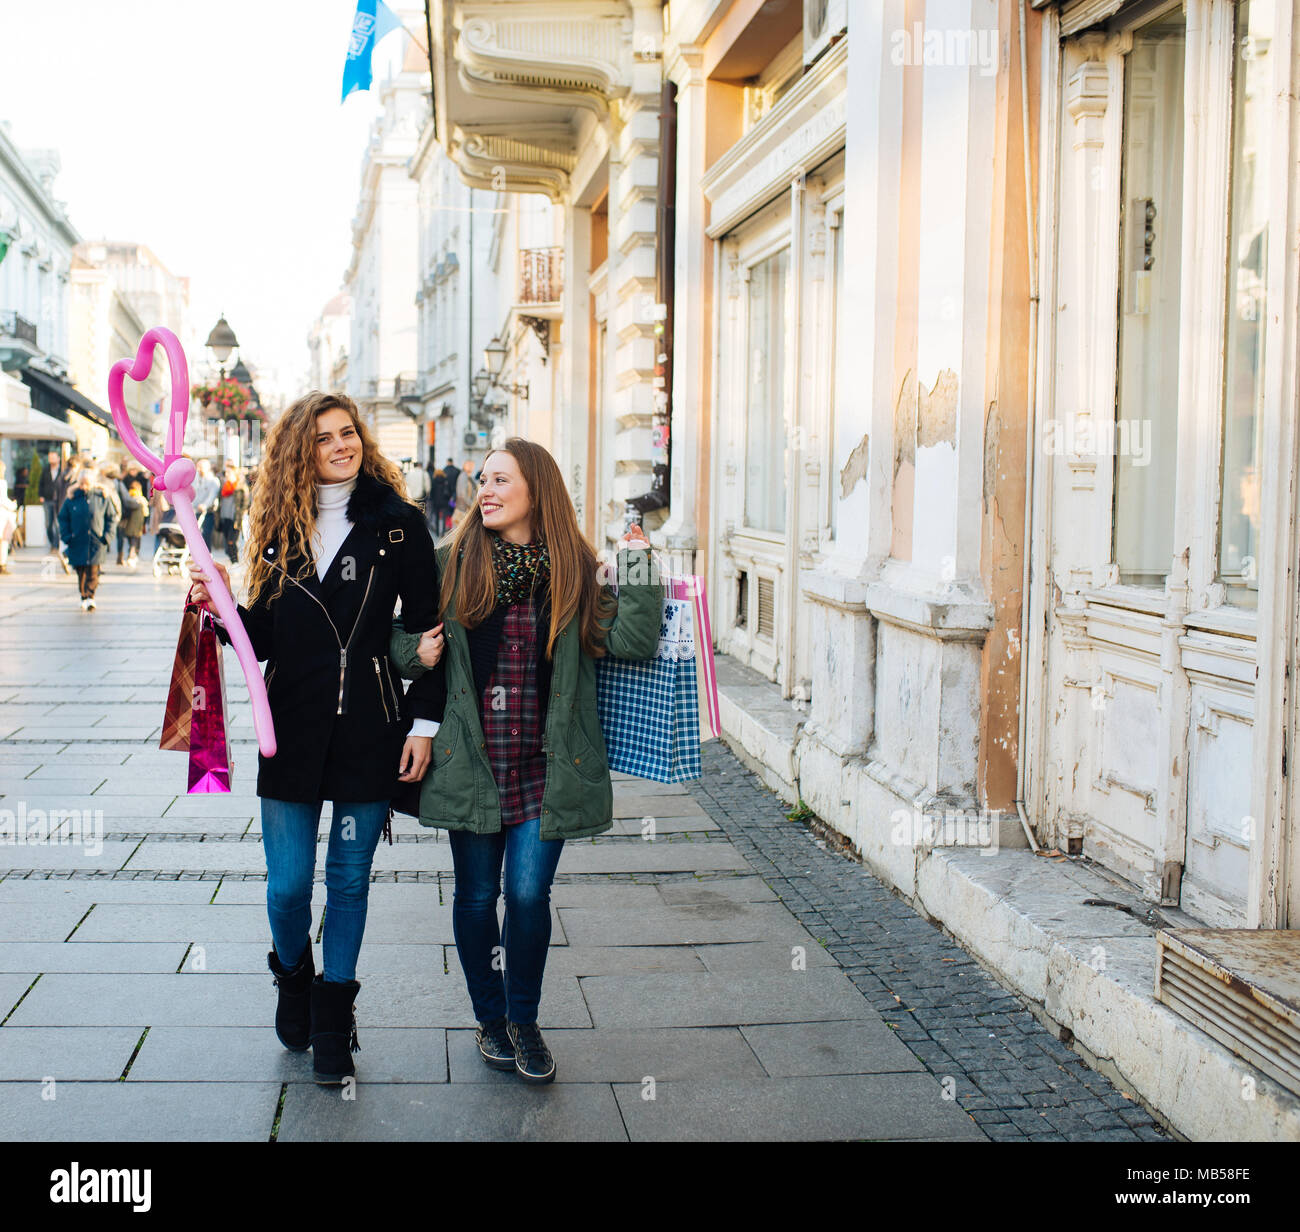 Two attractive young women is satisfied with shopping and walking down the street - Stock Image